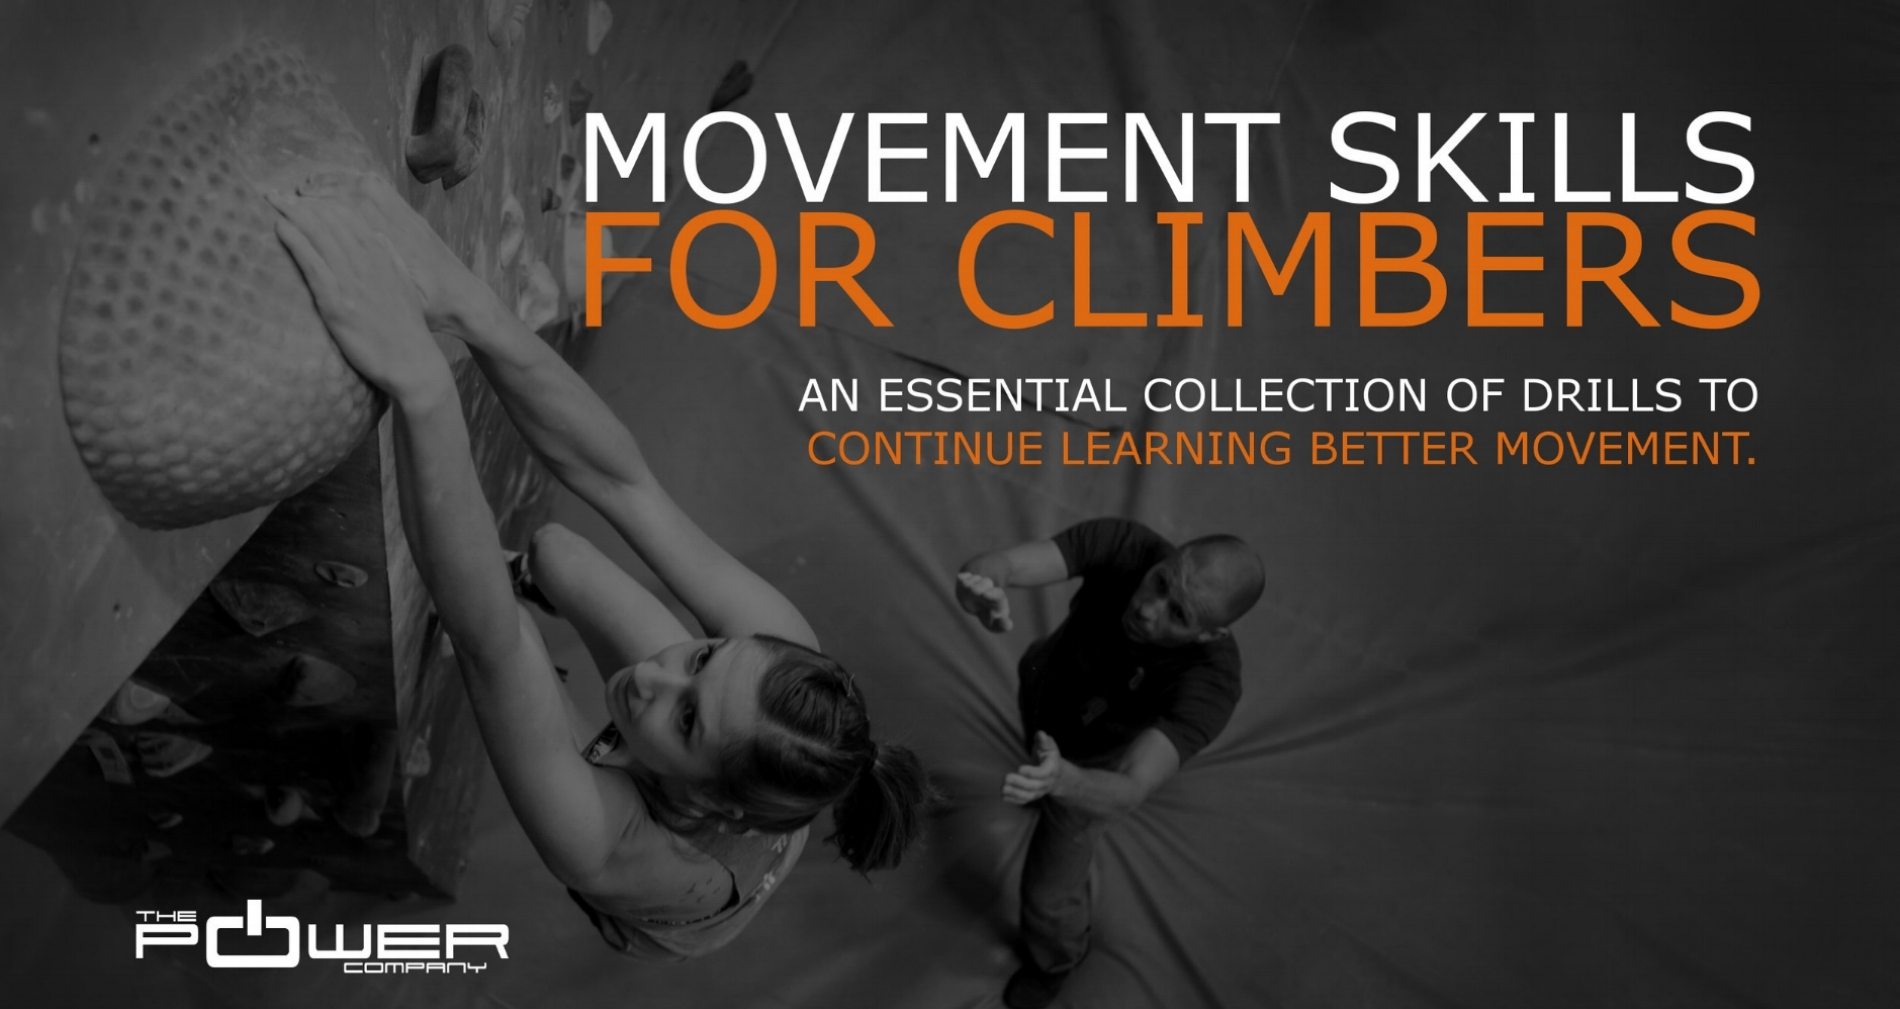 $15 Click the image to learn more about Movement Skills for Climbers